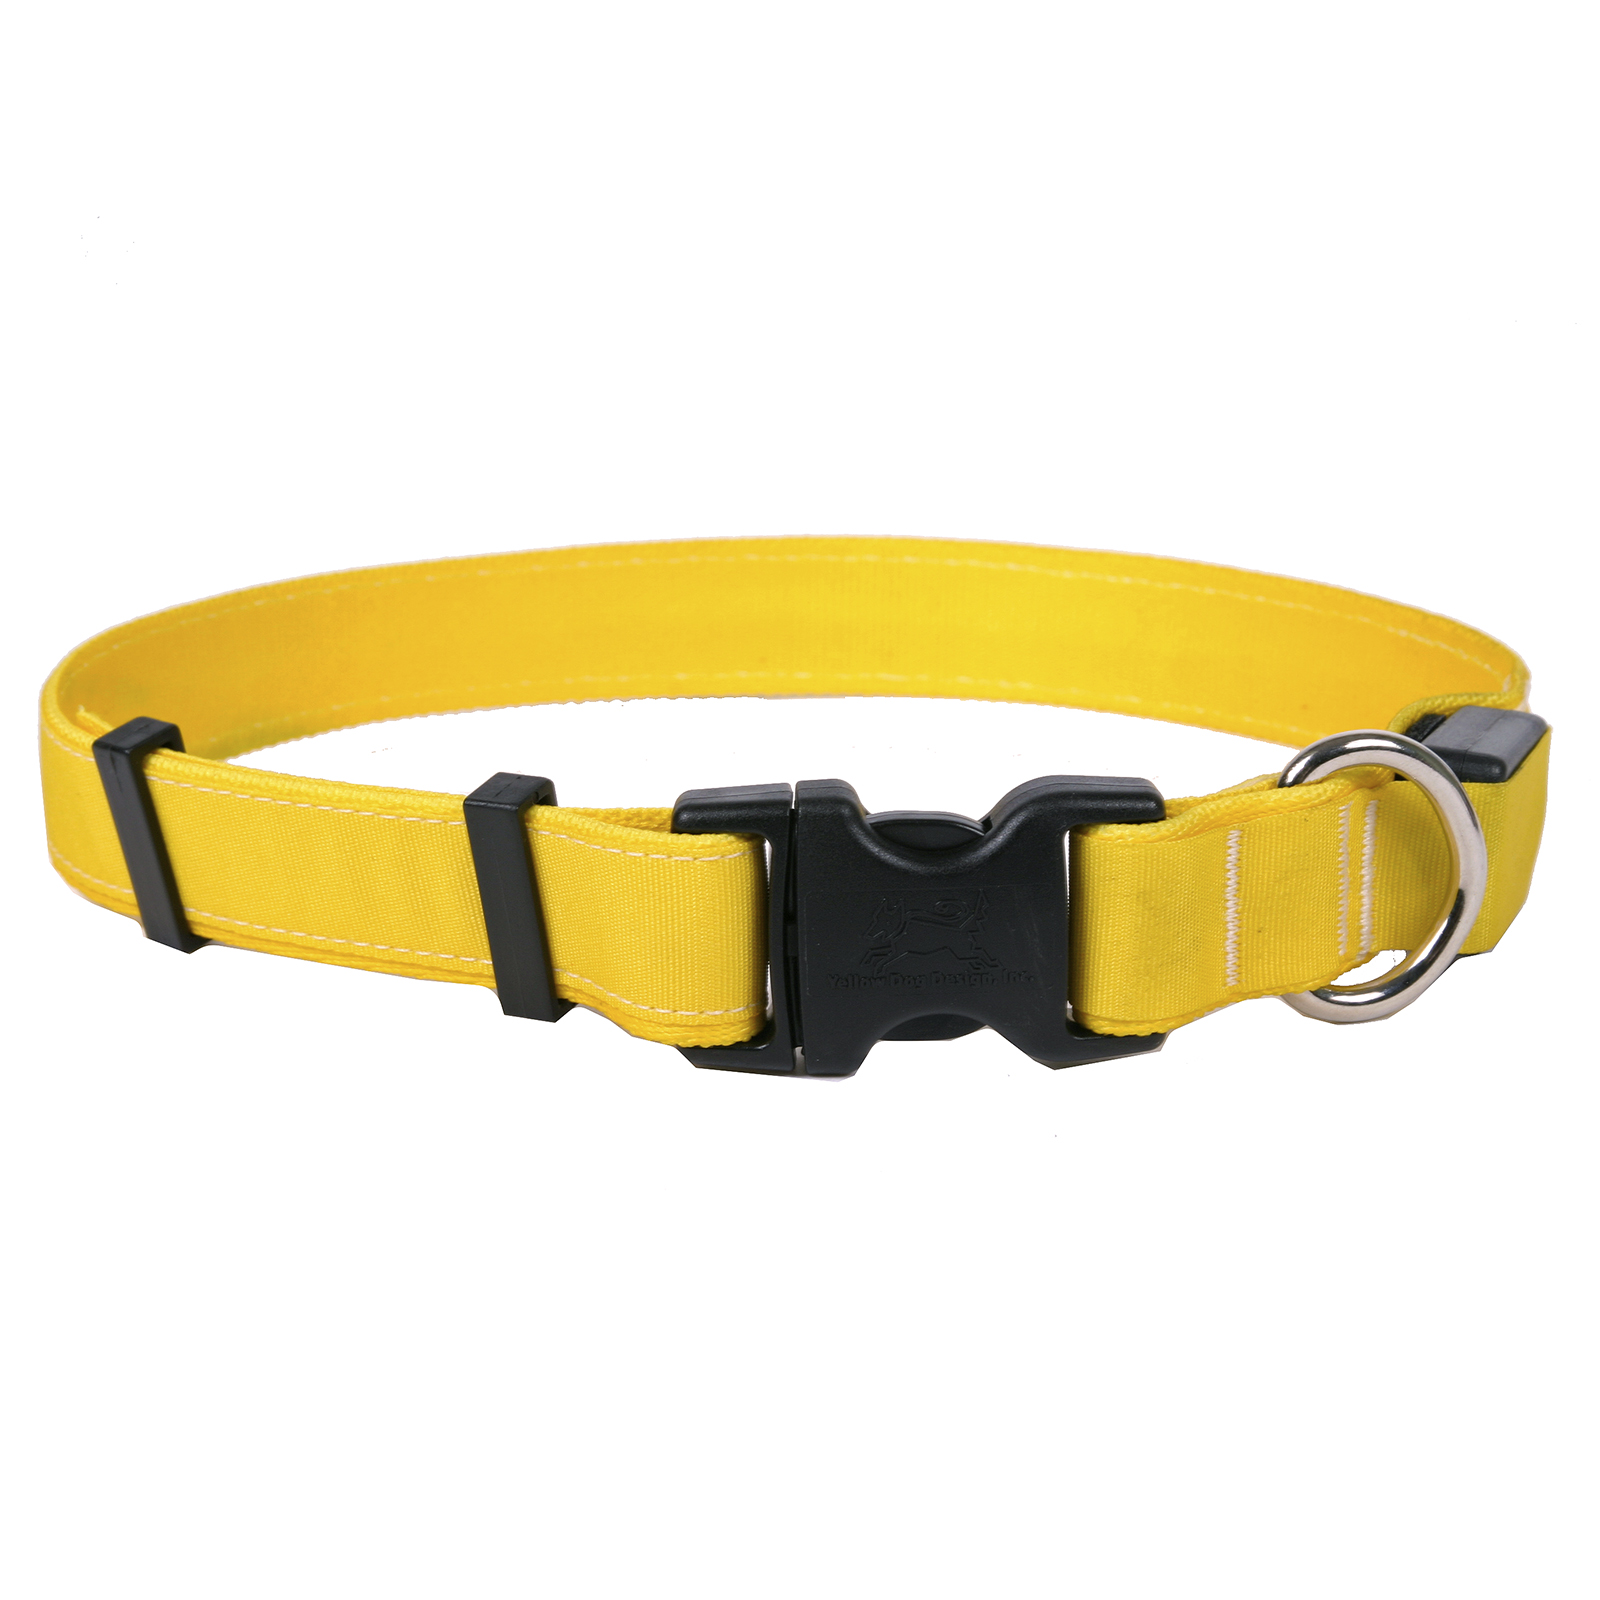 Solid Yellow ORION LED Dog Collar